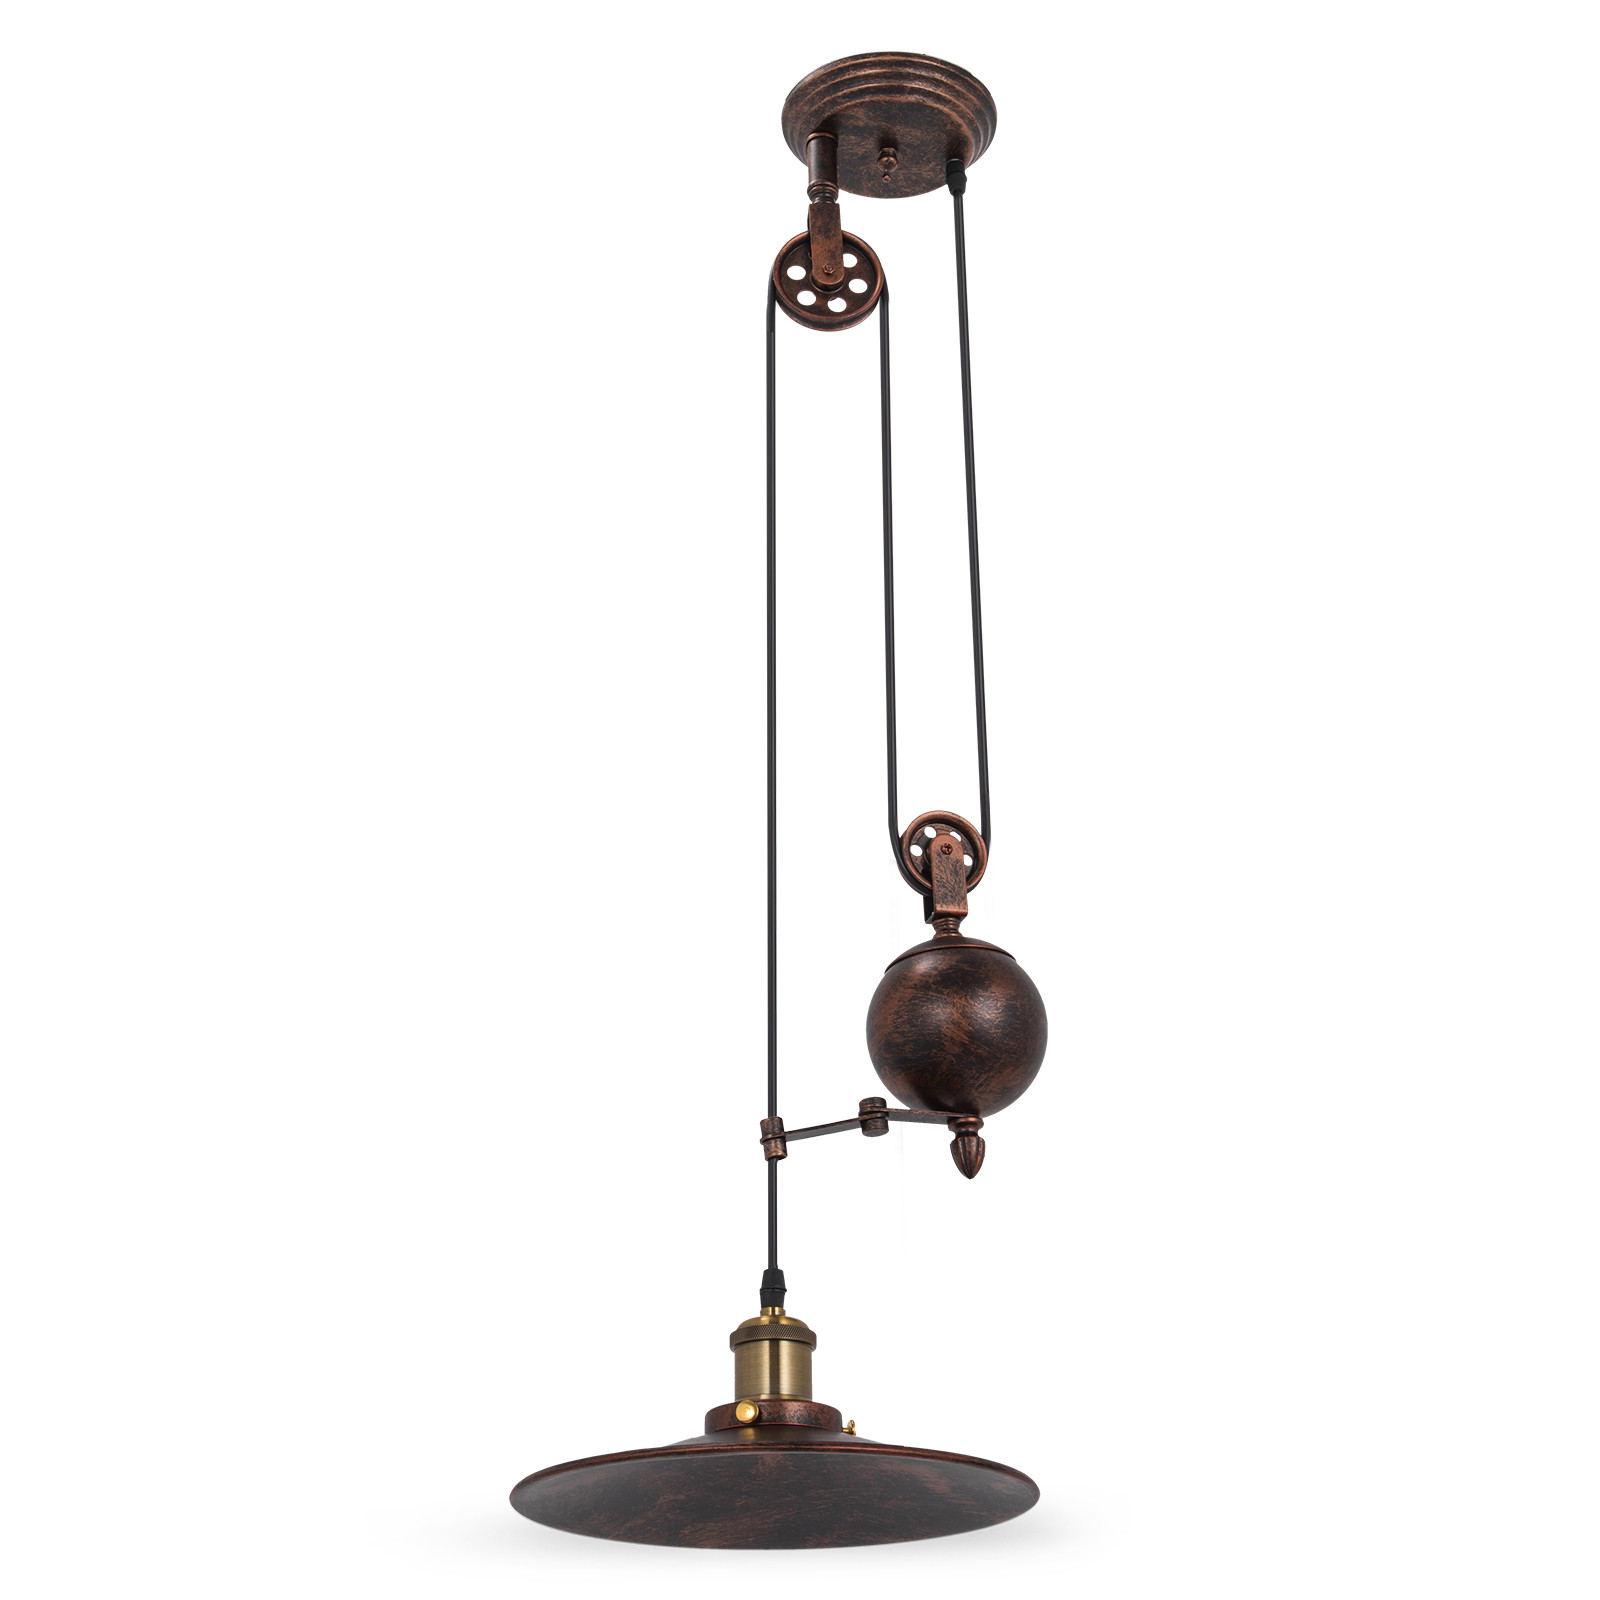 Old Industrial Pendant Light: Industrial Retro Vintage Hanging Ceiling Light Pendant